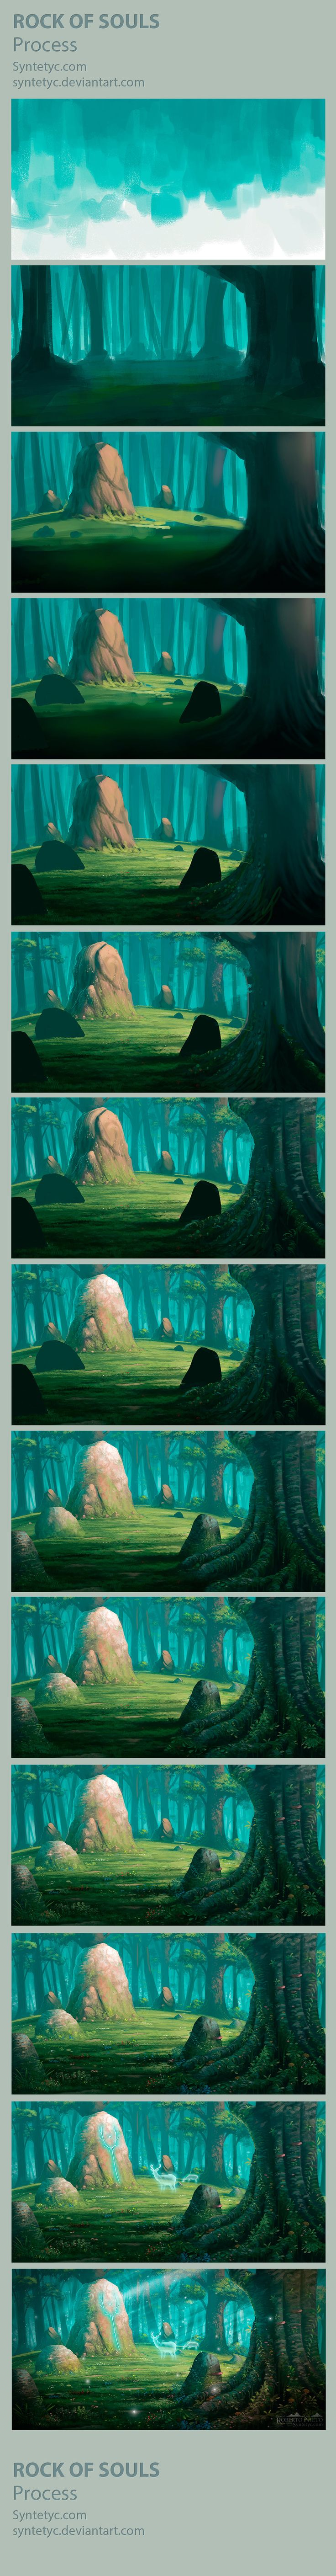 The Rock of Souls - PROCESS by Syntetyc on DeviantArt via cgpin.com